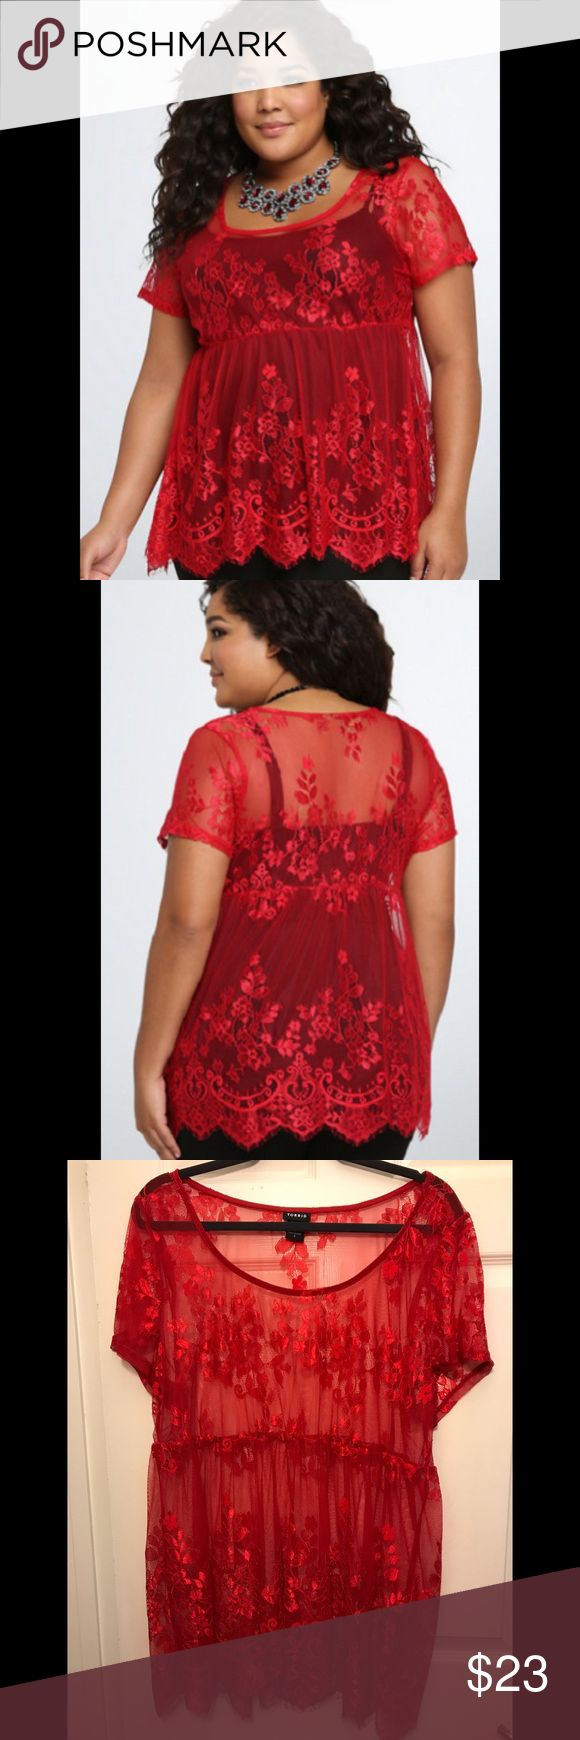 Torrid Sheer Lace Babydoll Top NWOT Single? Taken? Whatever your relationship status, this sheer, red floral lace top will add some romance to your life. The delicate top can easily be layered; a babydoll cut flatters your figure, and the eyelash trim adds a flirty touch. **Brand new without tags. Took the tags off, but never had occasion to wear it.** torrid Tops Blouses